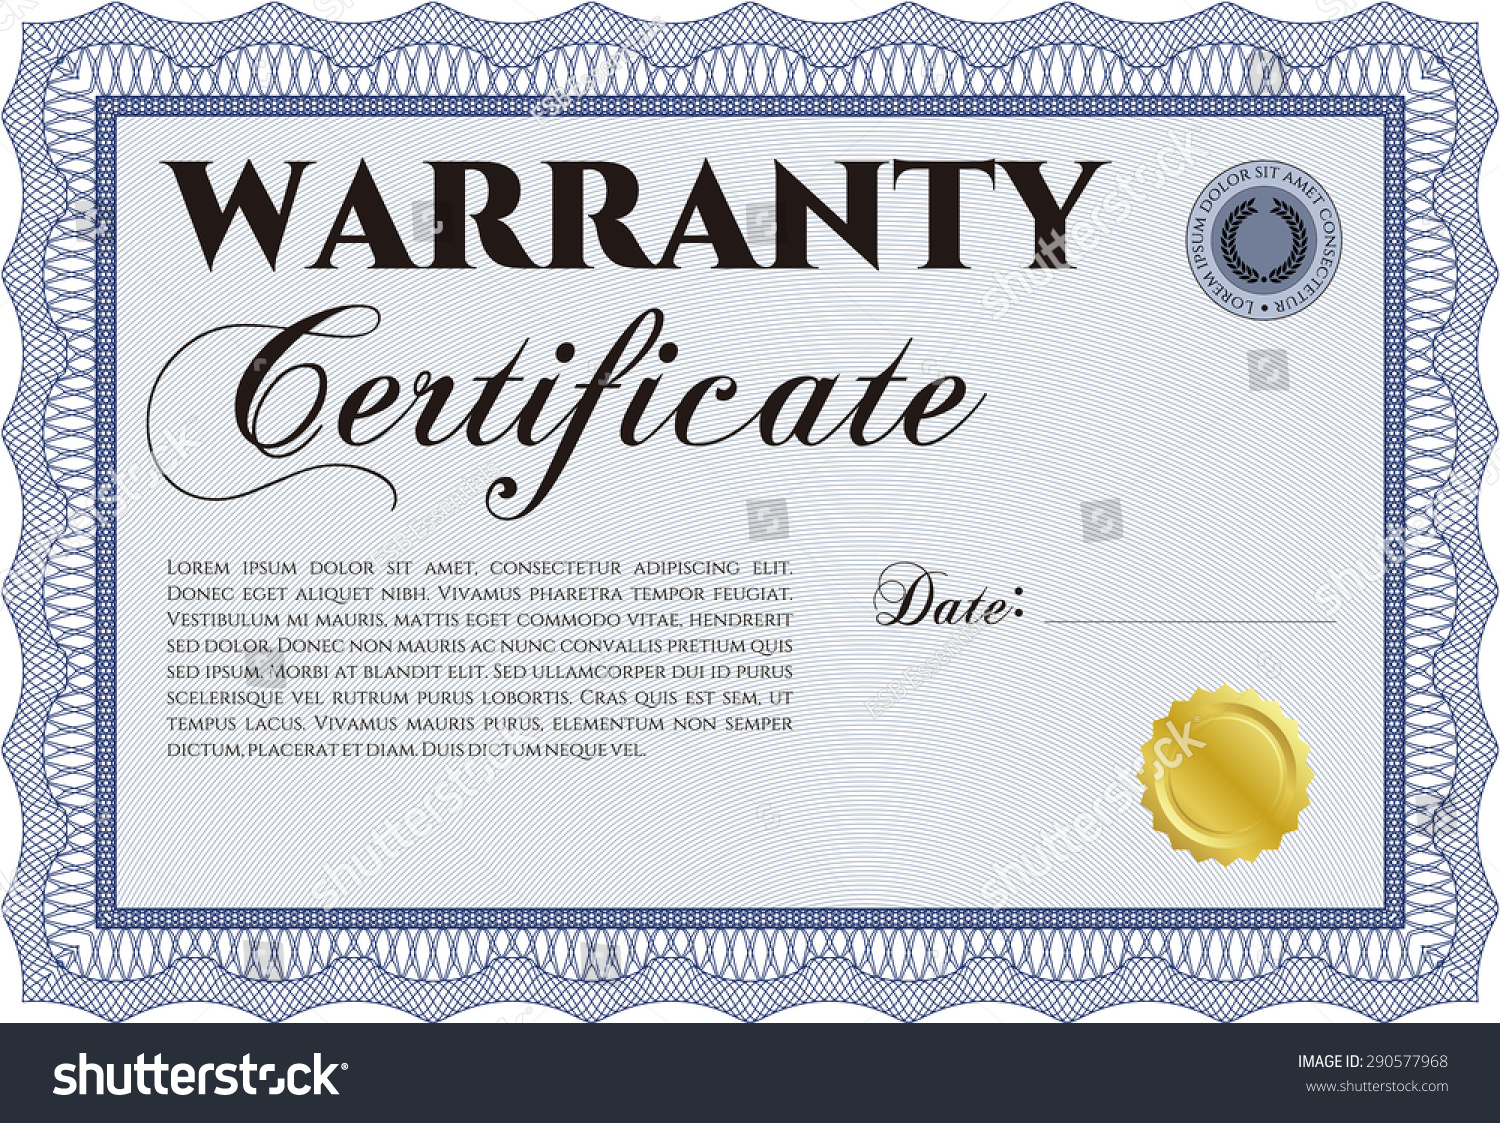 Corporate stock certificate template images templates example sample stock certificate template 15 birth certificate templates word pdf template alramifo images aiddatafo Choice Image